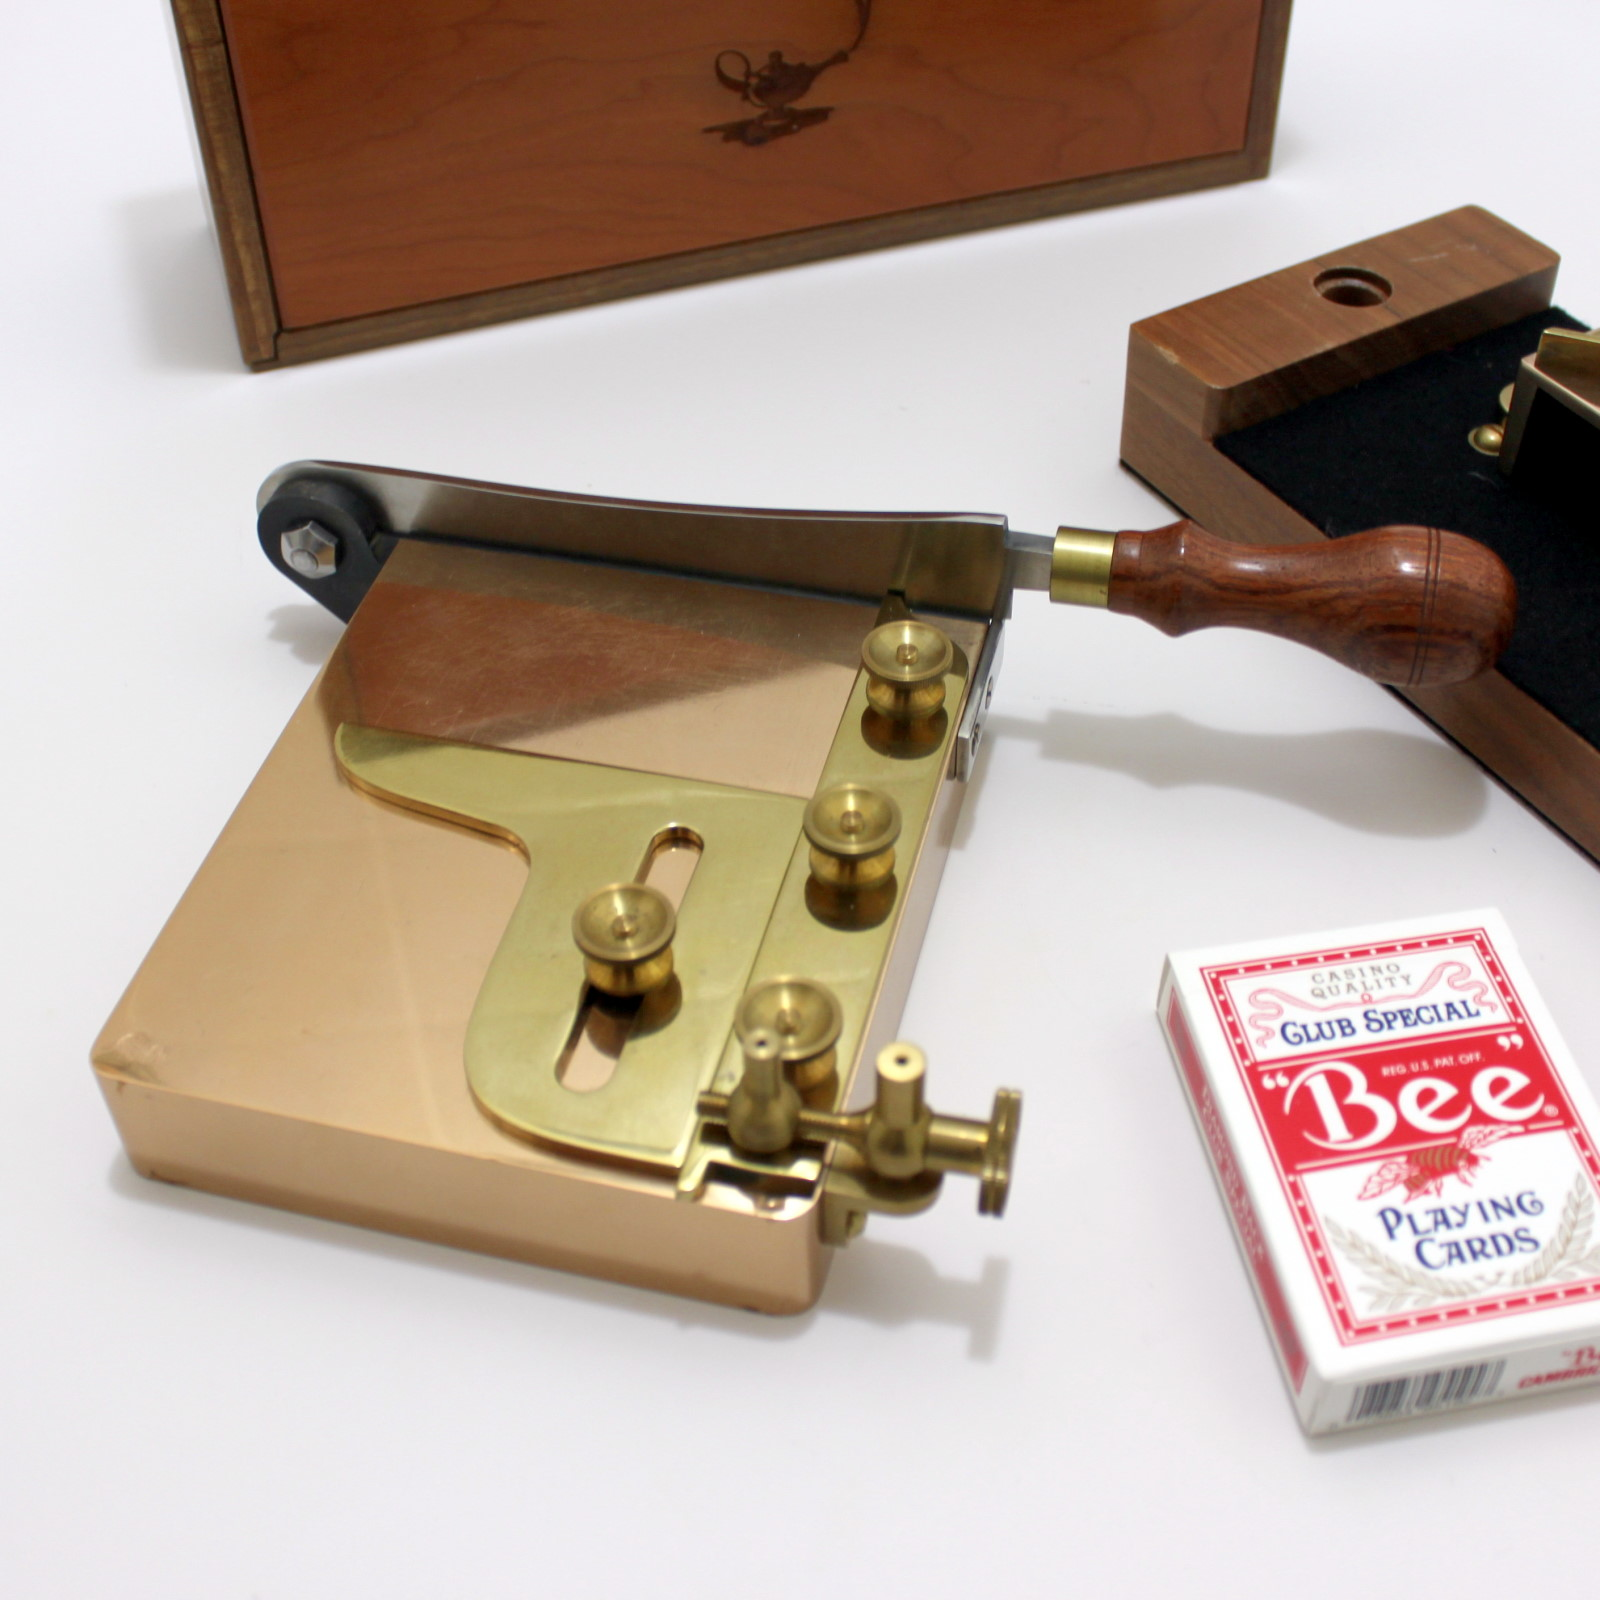 Card Trimmer and Re-Cornering Signature Set by Owen Magic Supreme